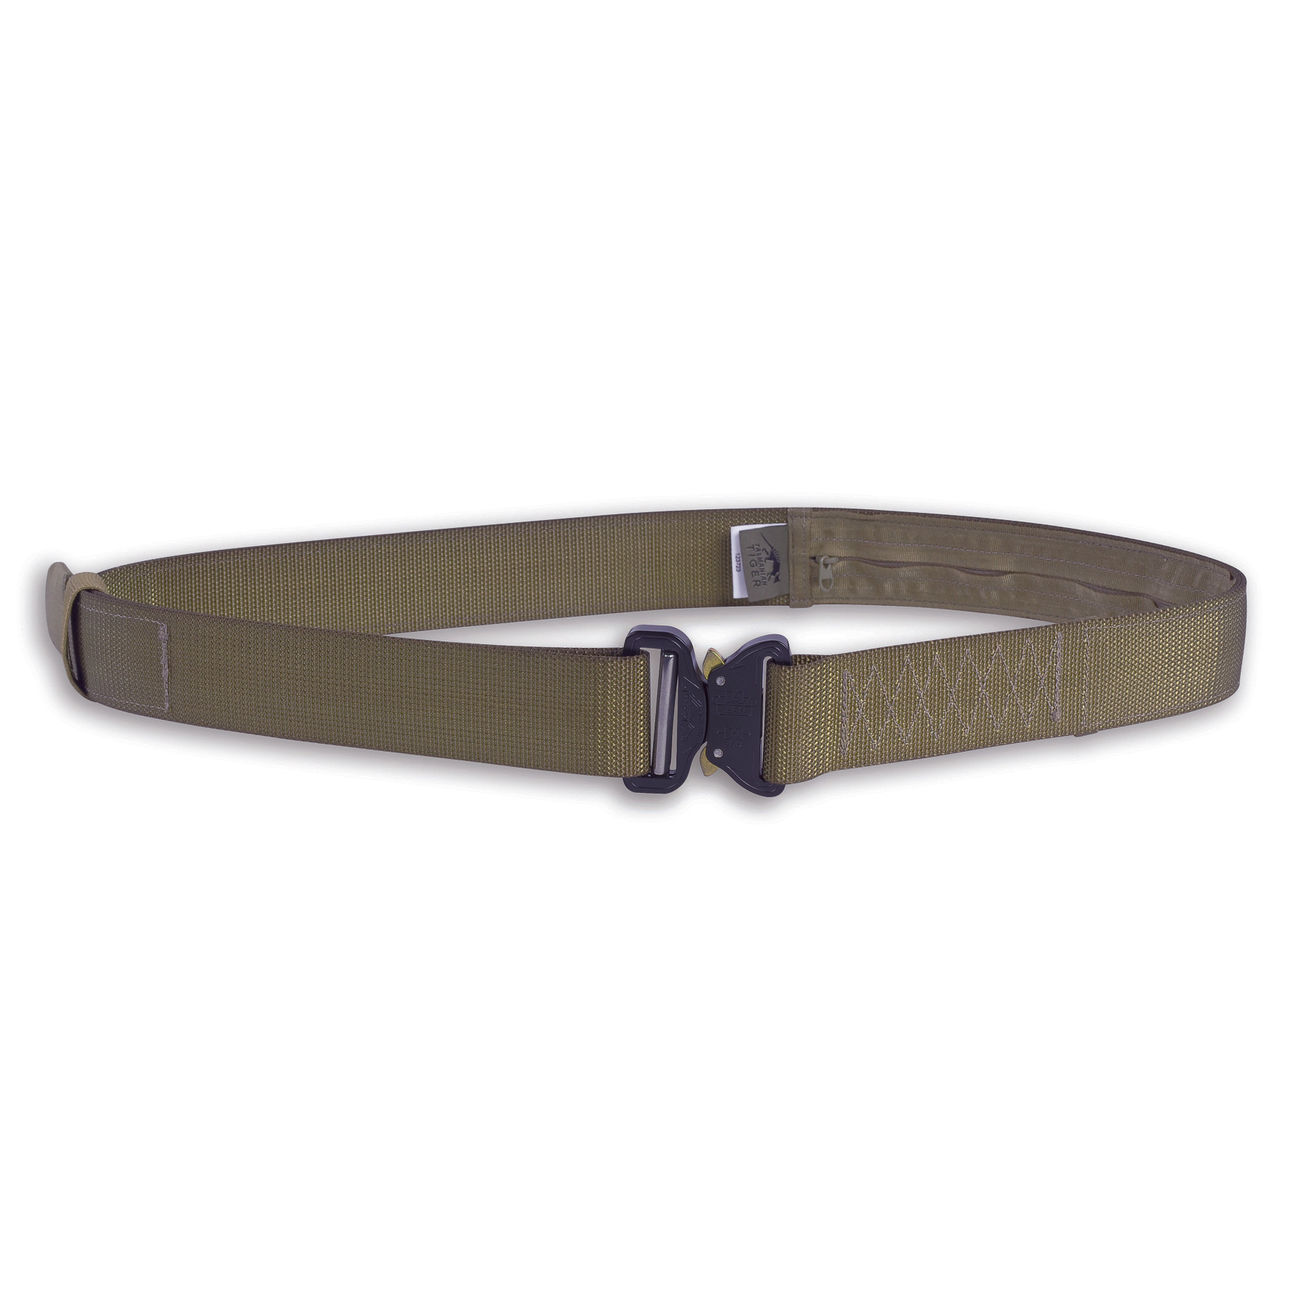 TT Gürtel Tactical Belt MK II mit Cobra Buckle Coyote Brown 0